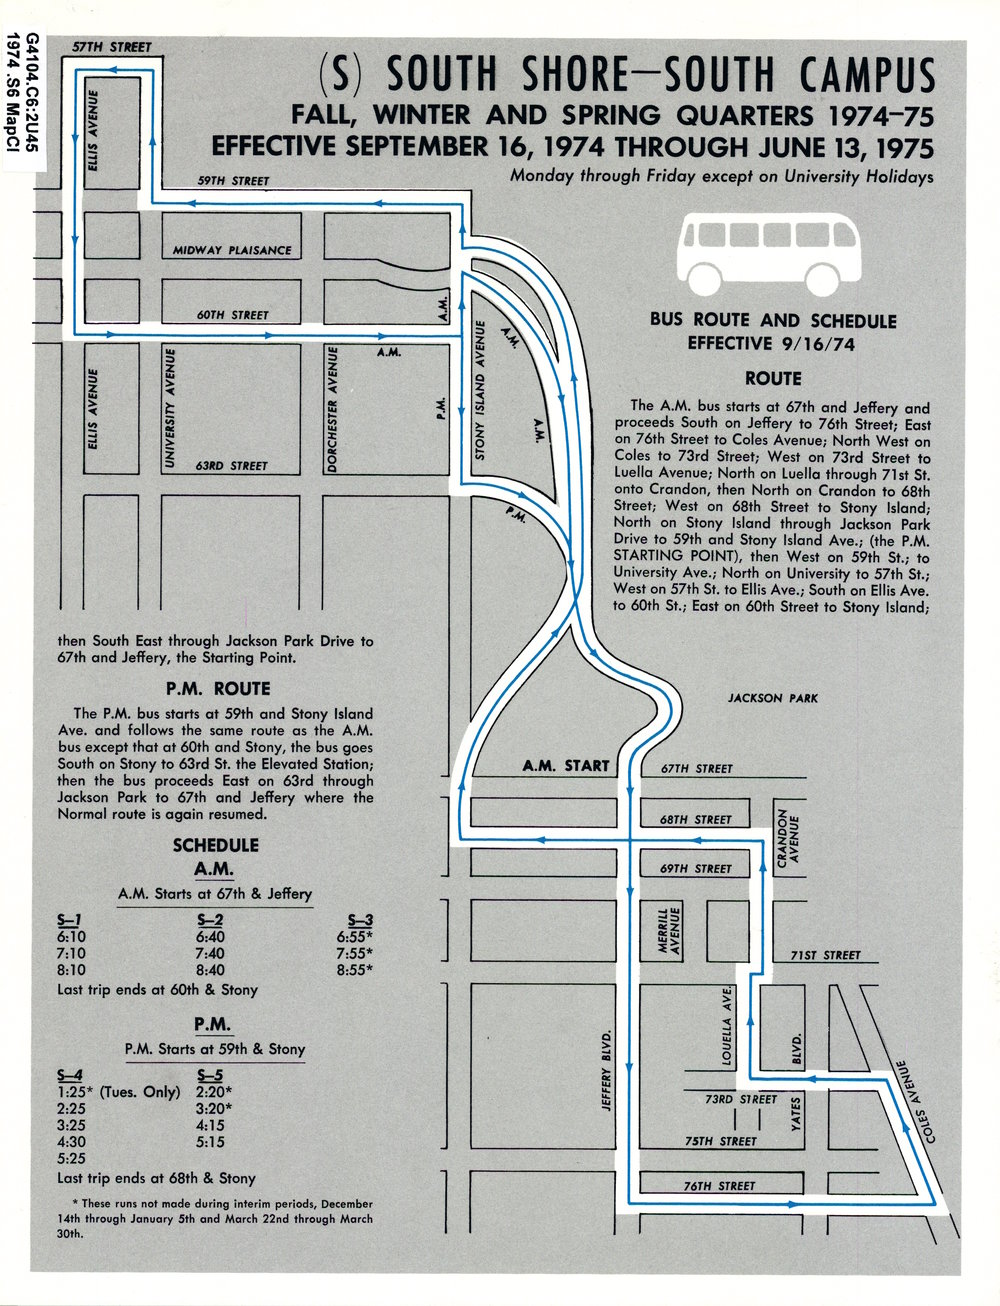 South Shore Shuttle, 1974-75